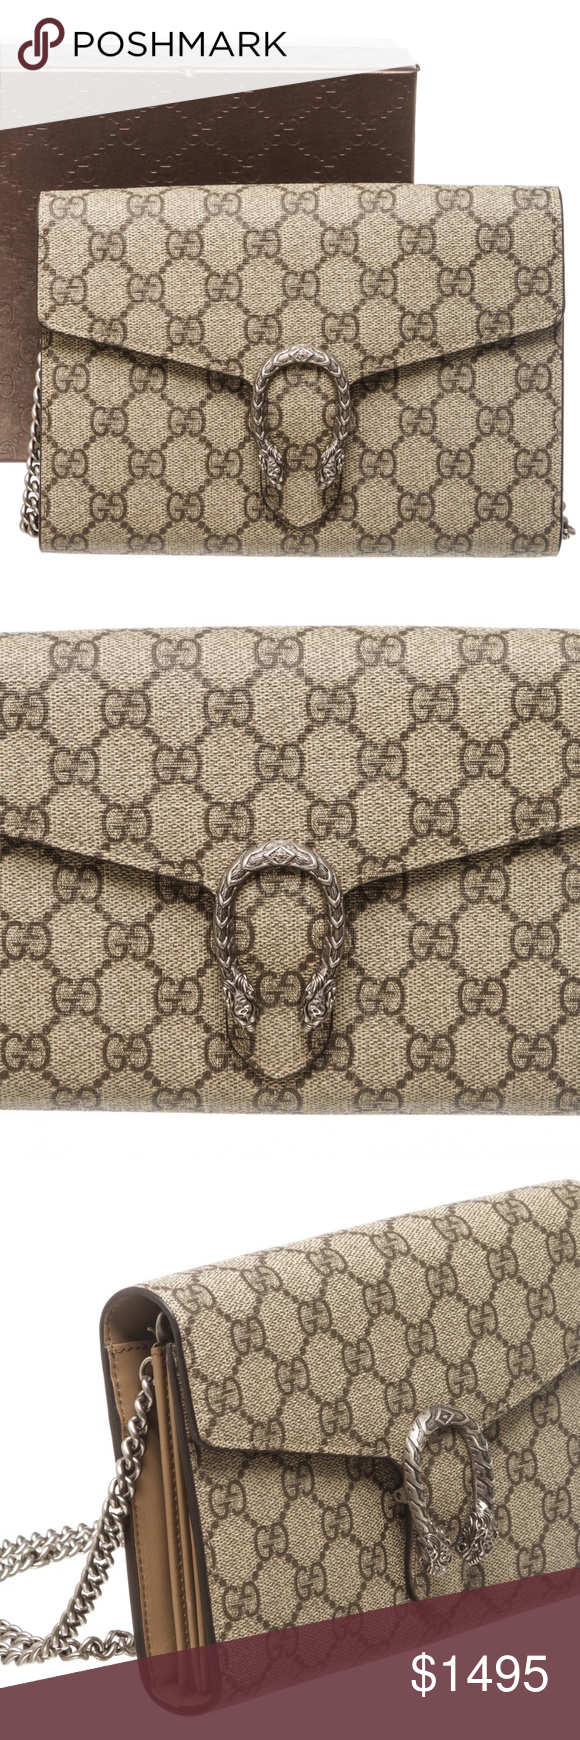 2e03f609cc0 Gucci GG Supreme Dionysus Chain Wallet Bag Brown and beige GG Supreme  coated canvas Gucci Dionysus